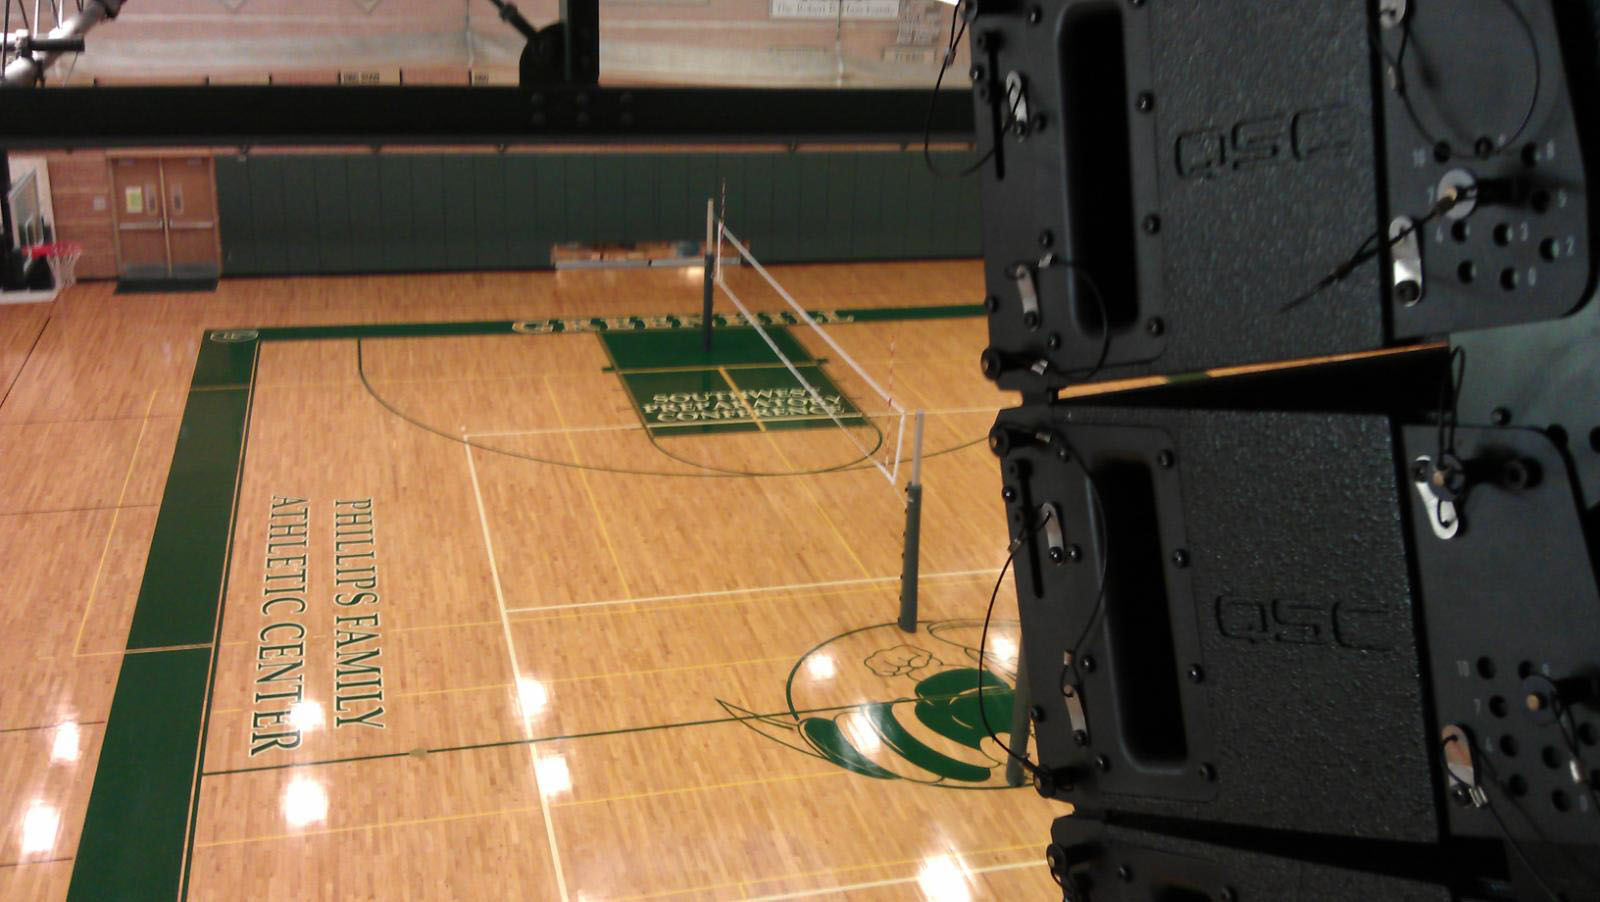 GC Pro Solves Greenhill School's Gymnasium Sound System Problems in a Single Day